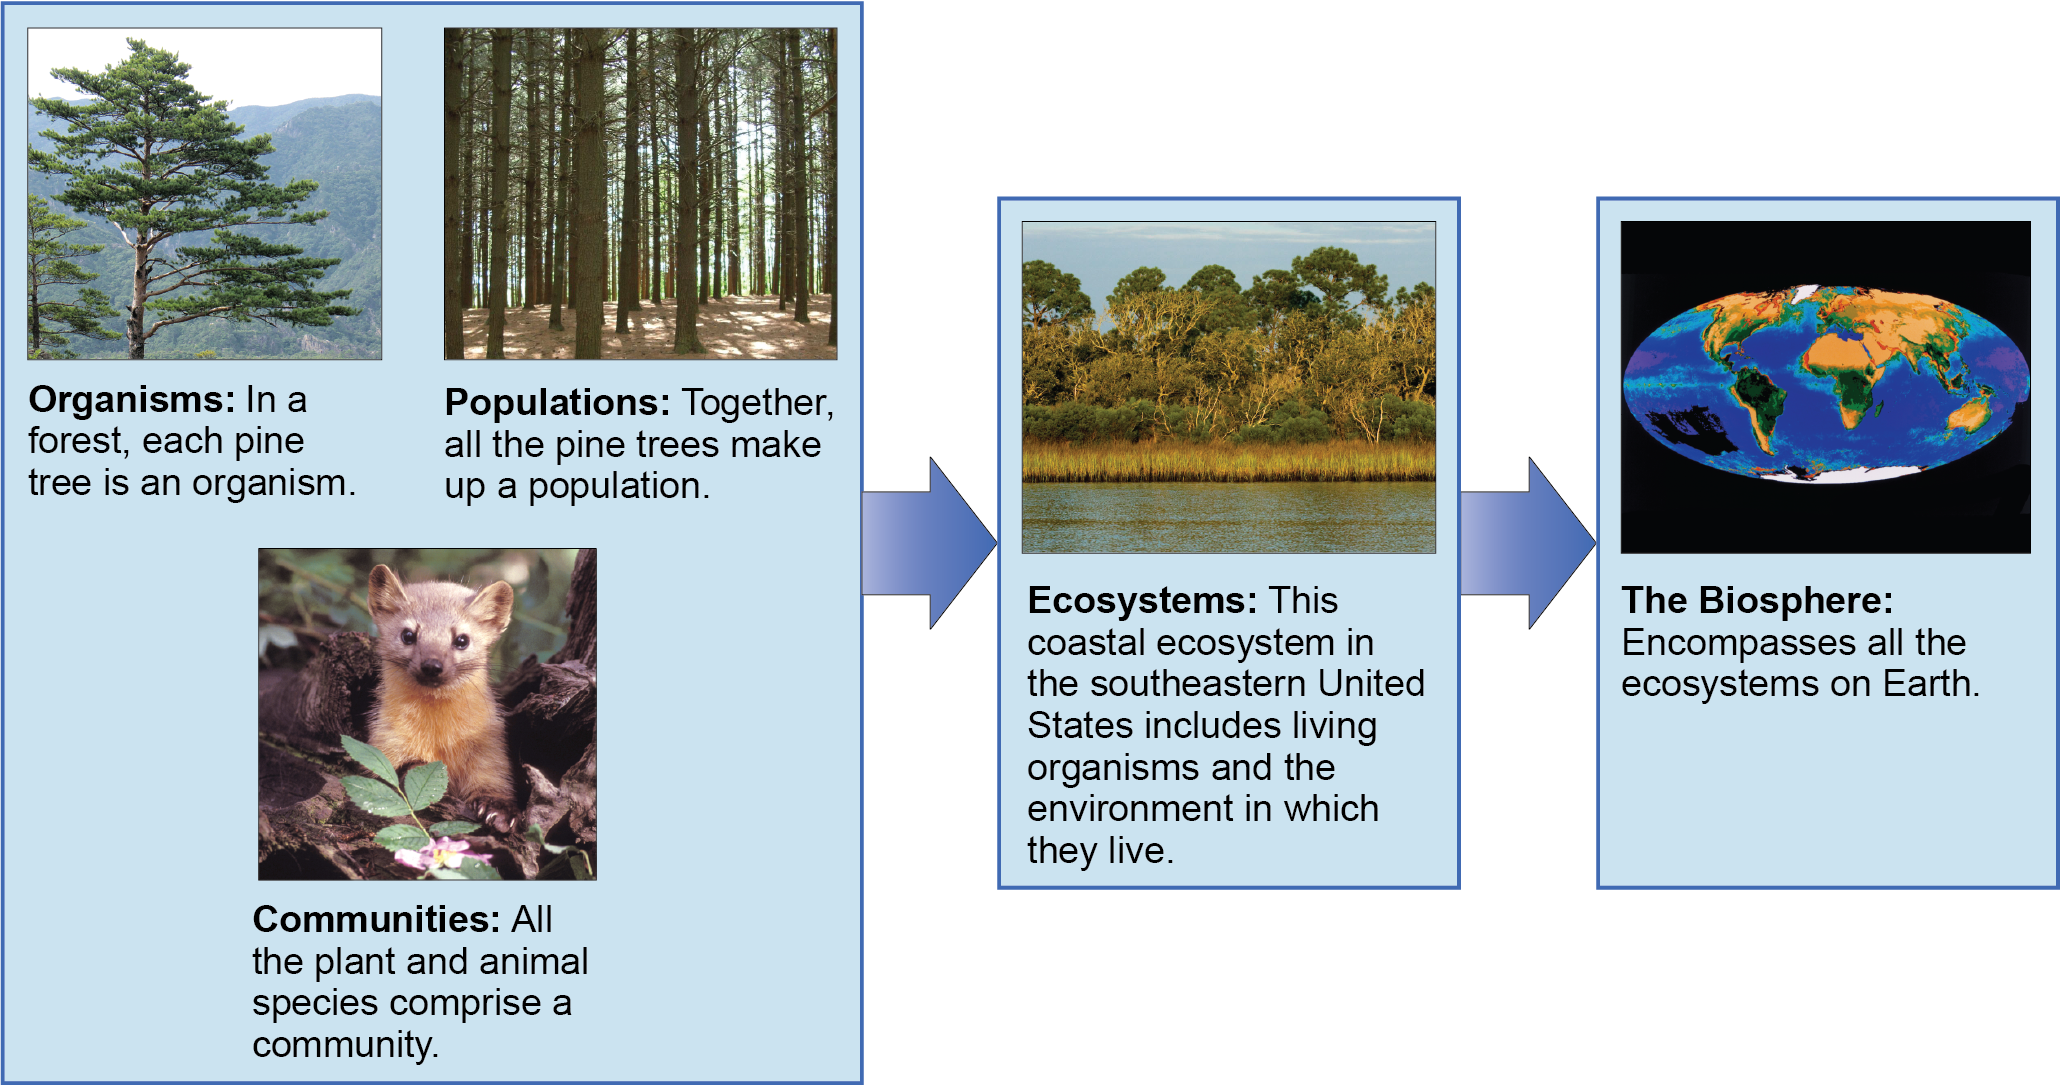 A flow chart of three boxes shows the hierarchy of living organisms. The top box is labeled Organisms, and a picture of a tree is shown; then populations, and a picture of a forest is shown; and then communities, and a picture of a marmot is shown. The second box is labeled ecosystems; and has a photograph of a body of water, behind which is a stand of tall grasses developing into more dense vegetation and trees as distance from the water increases. The third box is labeled as the biosphere; and shows a drawing of planet Earth.